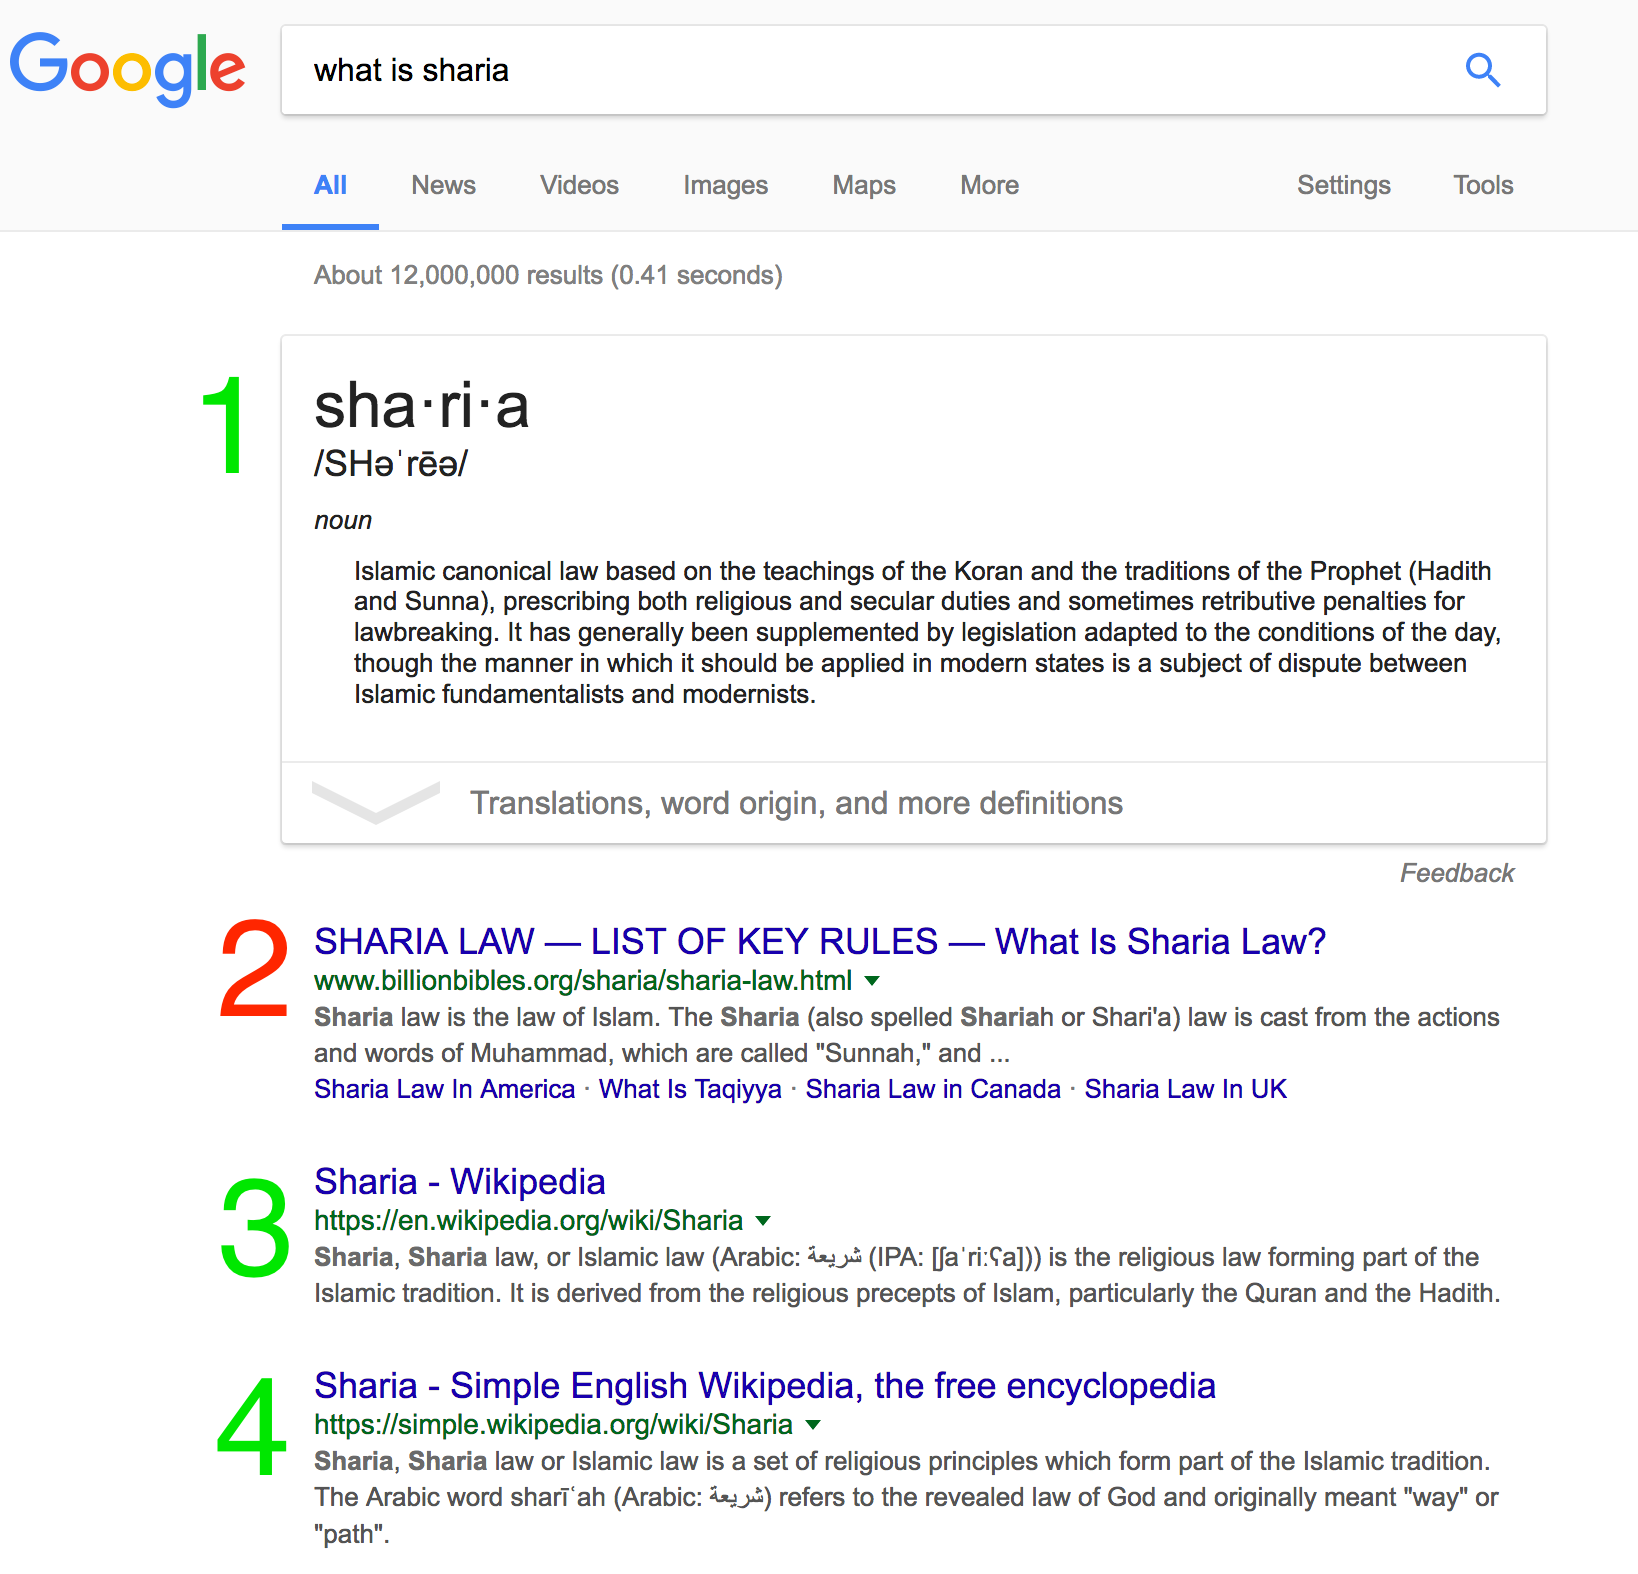 The top pop out definition is a result from google s knowledge graph or semantic search launched in 2012 google s knowledge graph serves up quick facts